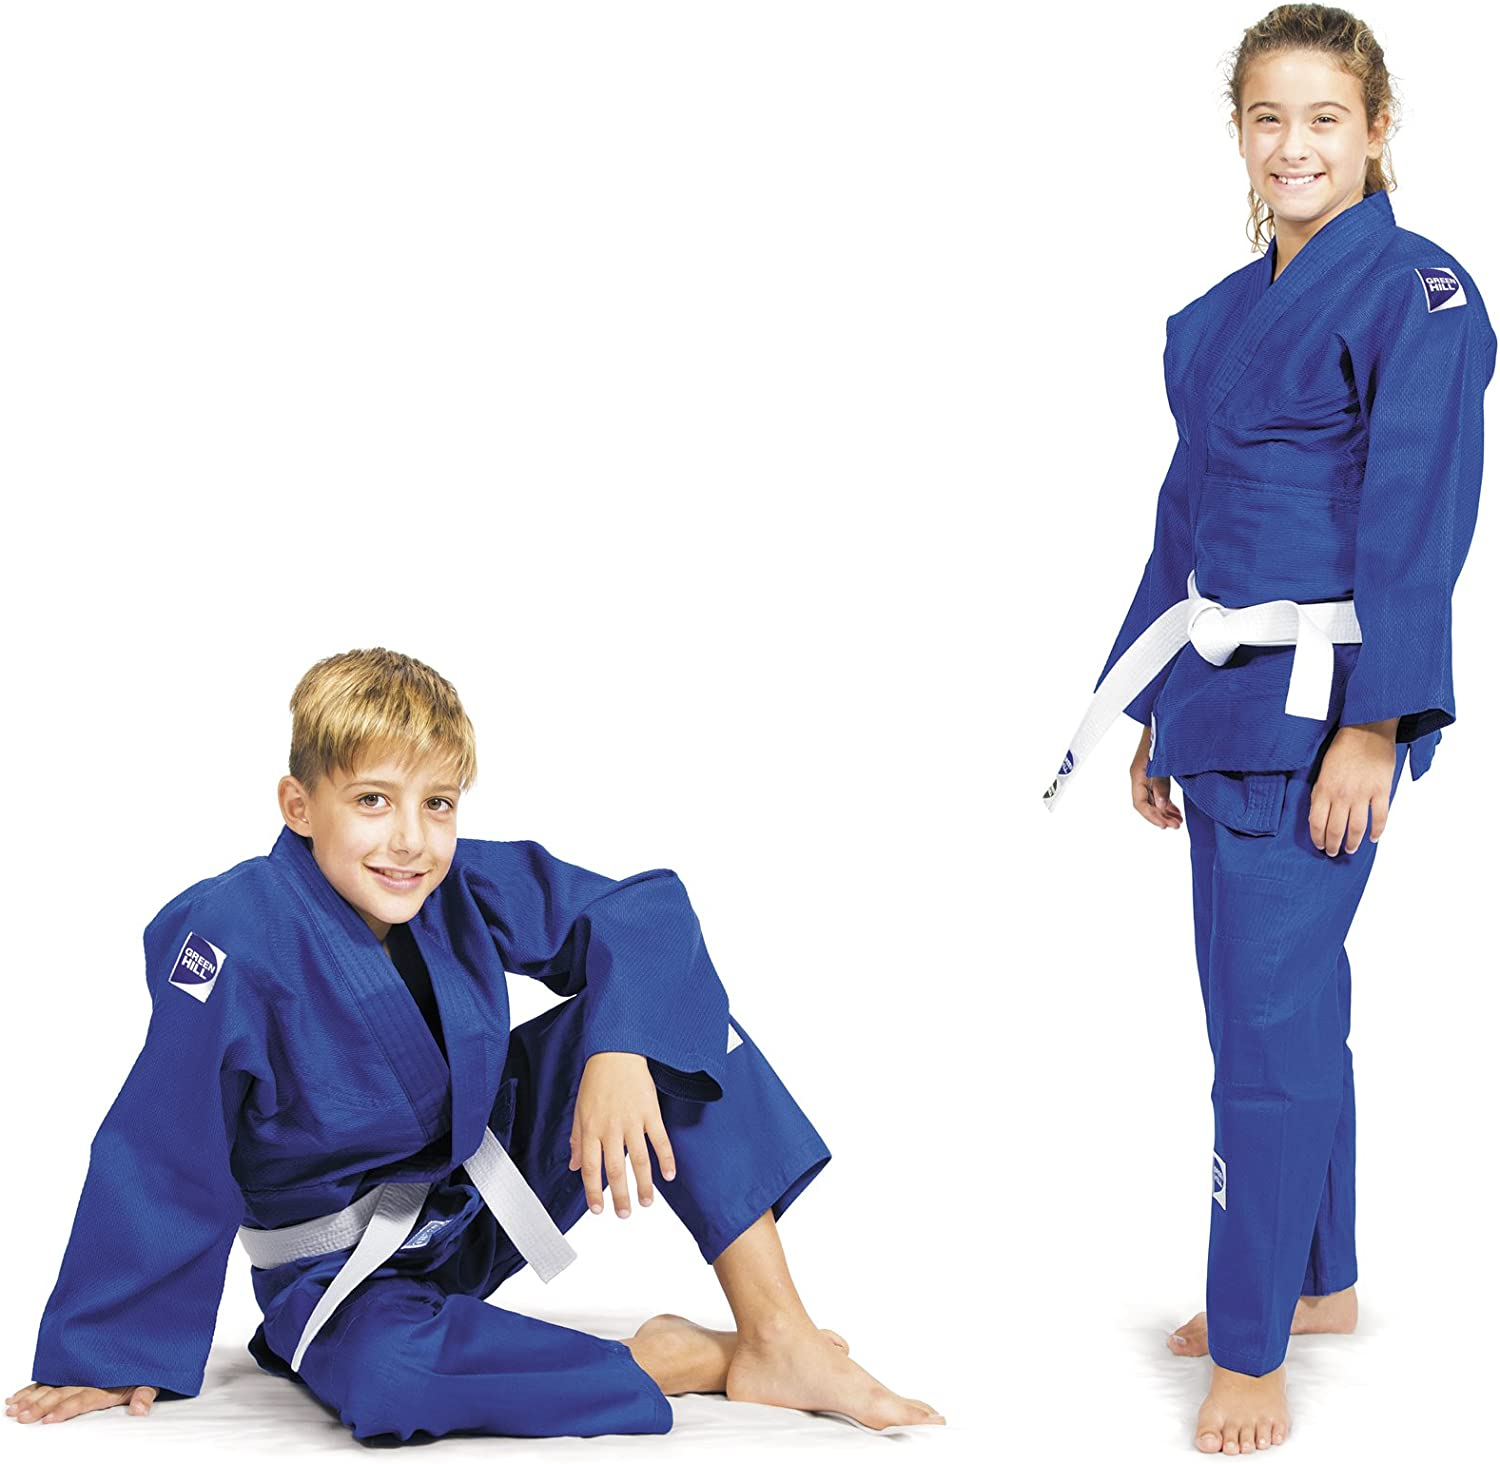 GREEN HILL Judo Suit Junior Gi Suit Martial Arts Suit Kids Best of BJJ Kimono Ju-Jitsu Aikido Karate Suit Martial Arts Uniform Martial Arts Costume for Training and Competition.